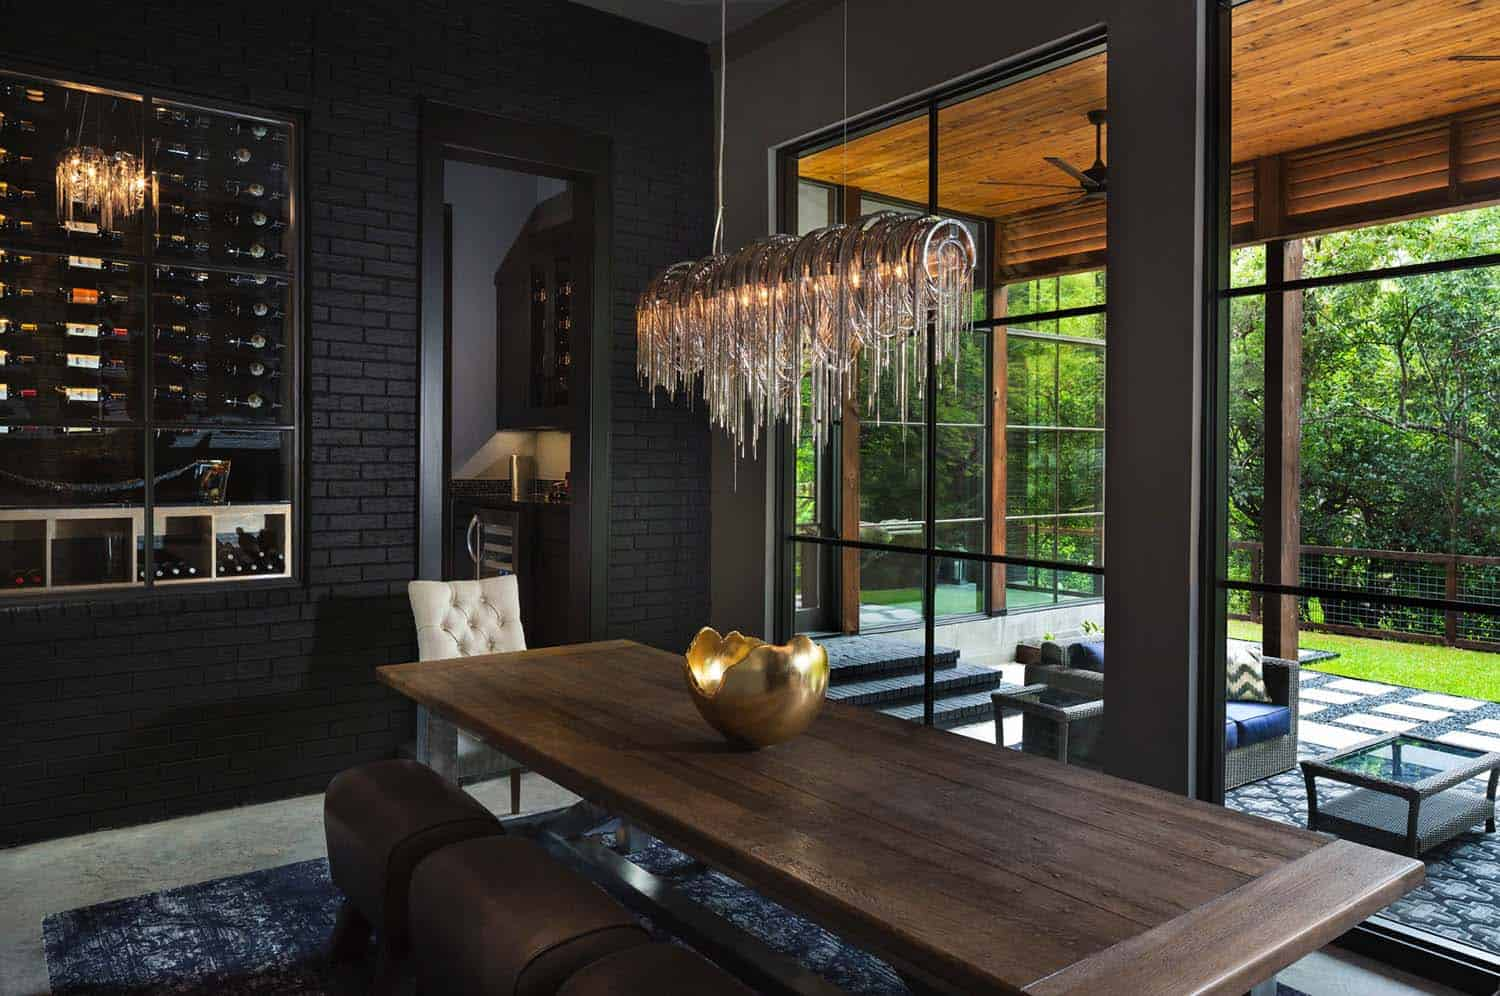 Urban Modern Interior Design: Urban Contemporary Home With An Industrial Twist In Dallas